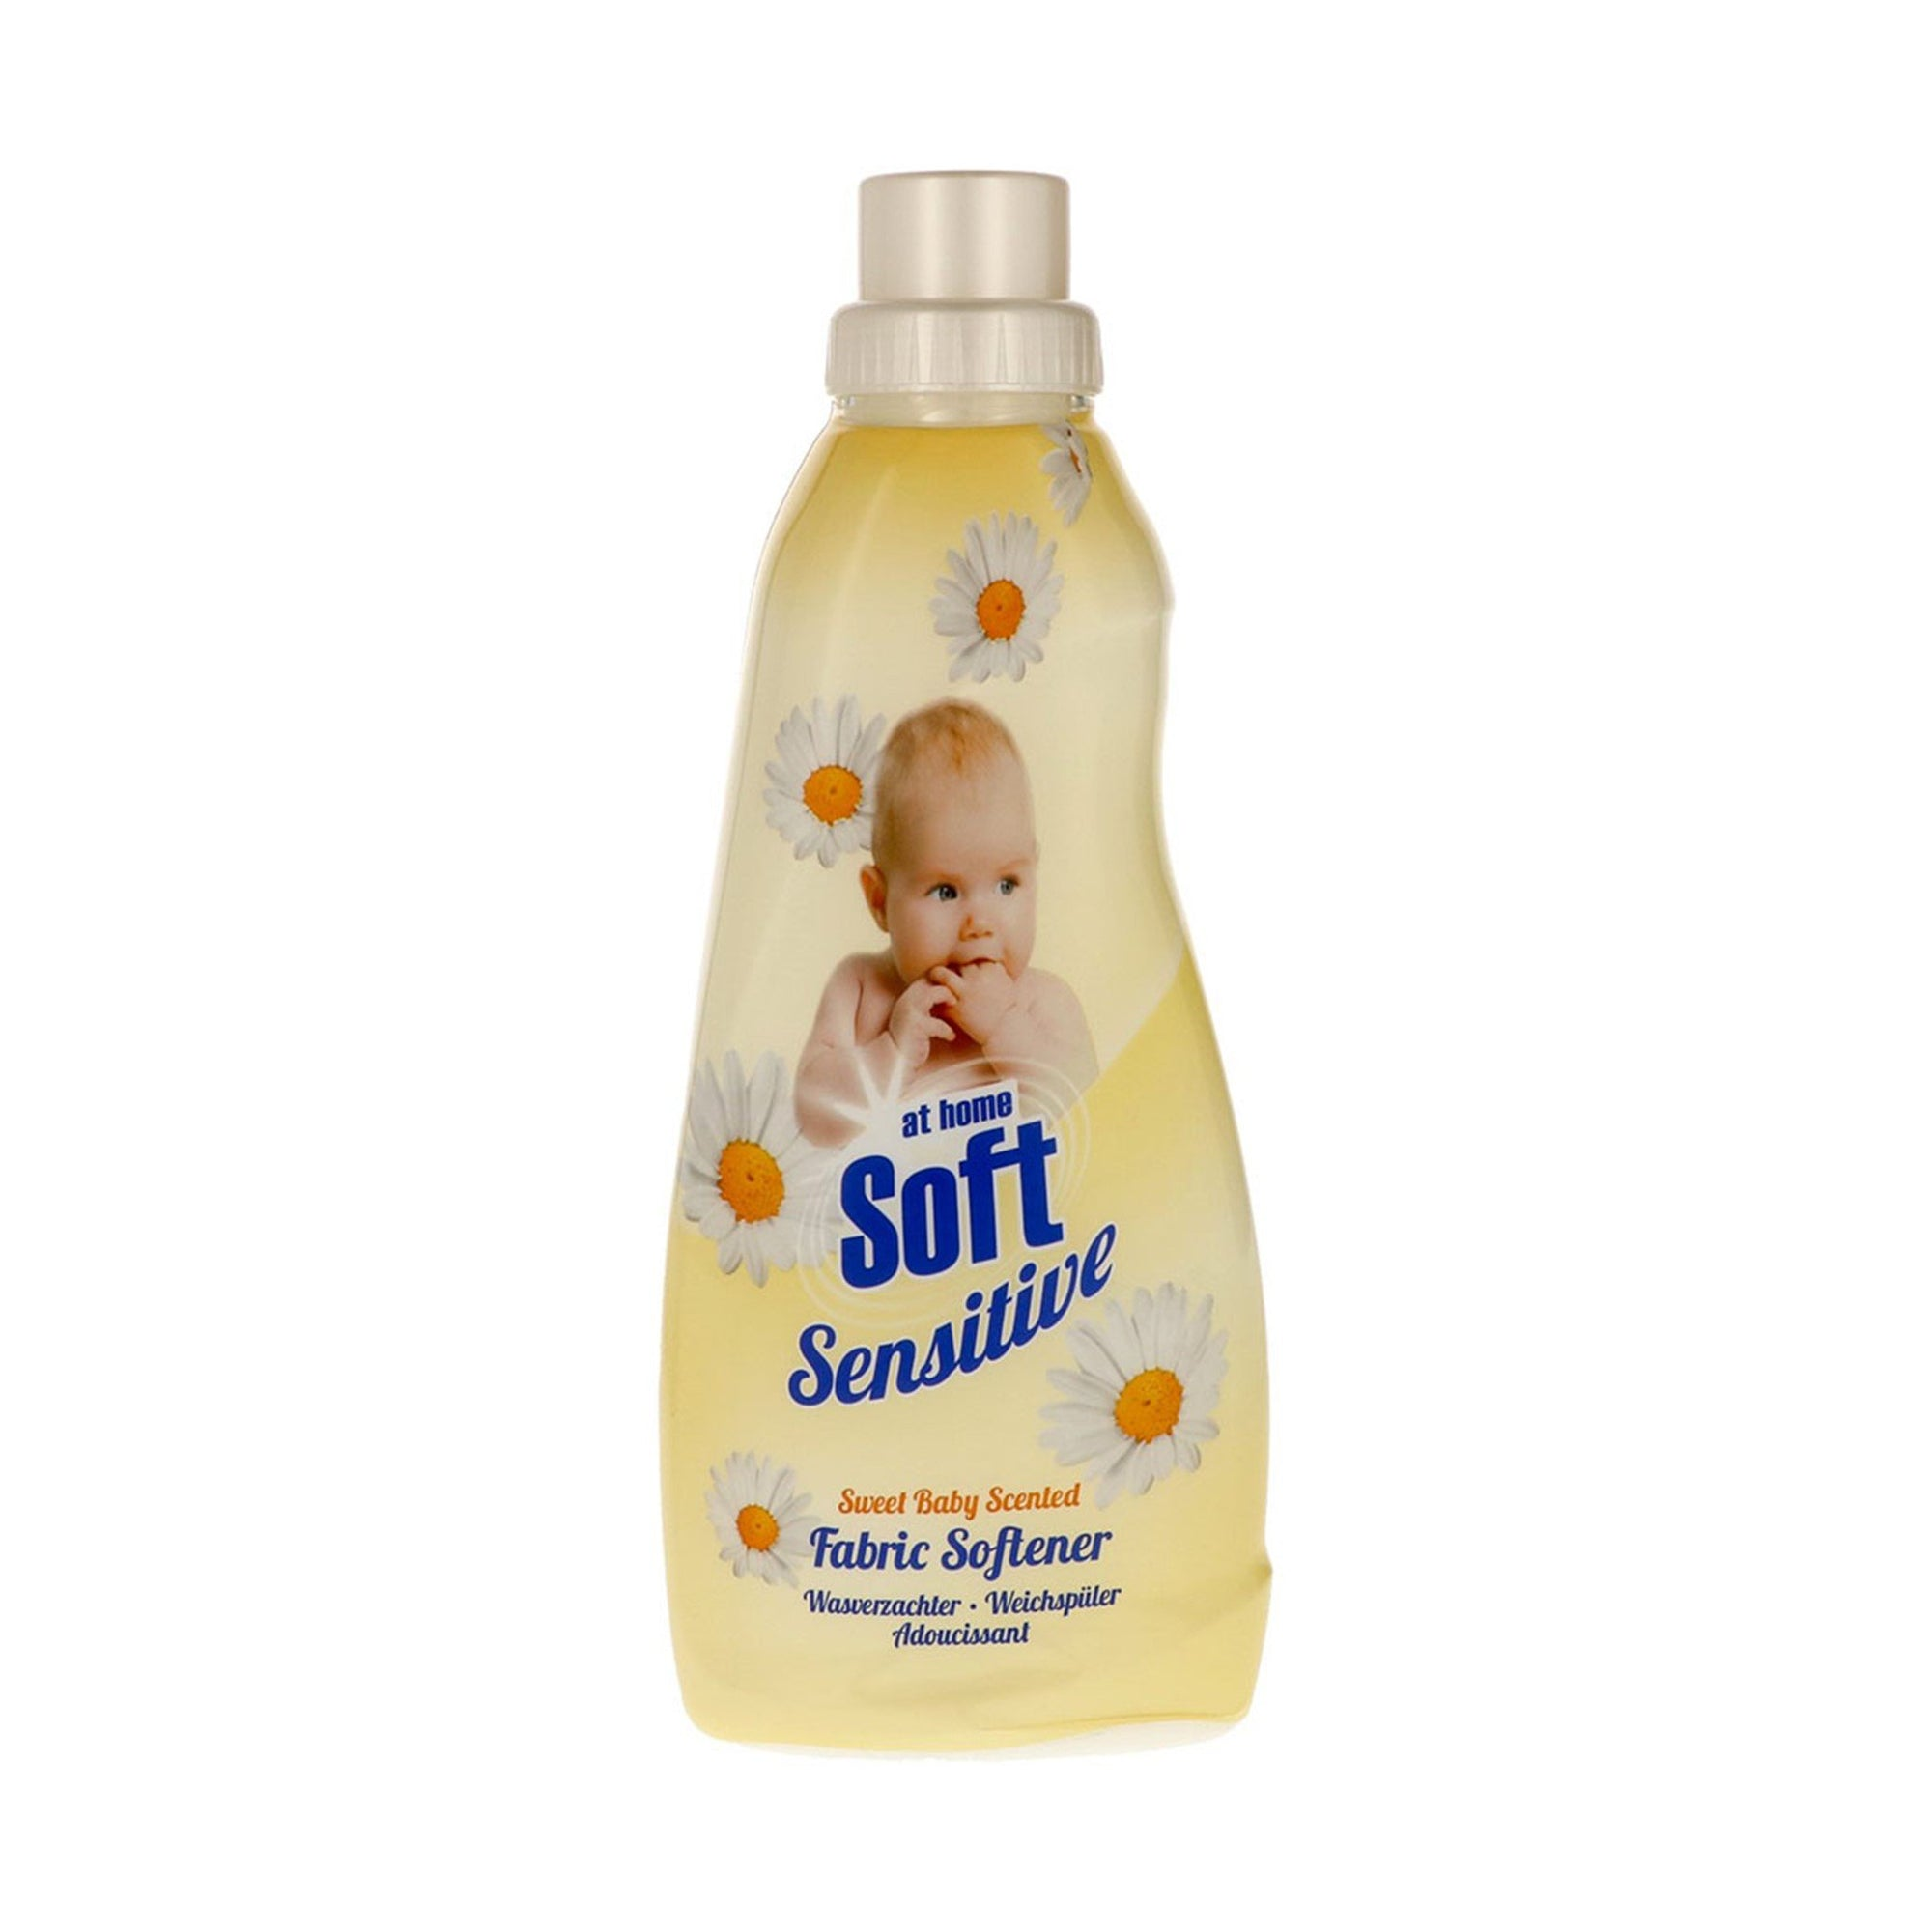 At Home Fabric Softener Sensitive 750ml